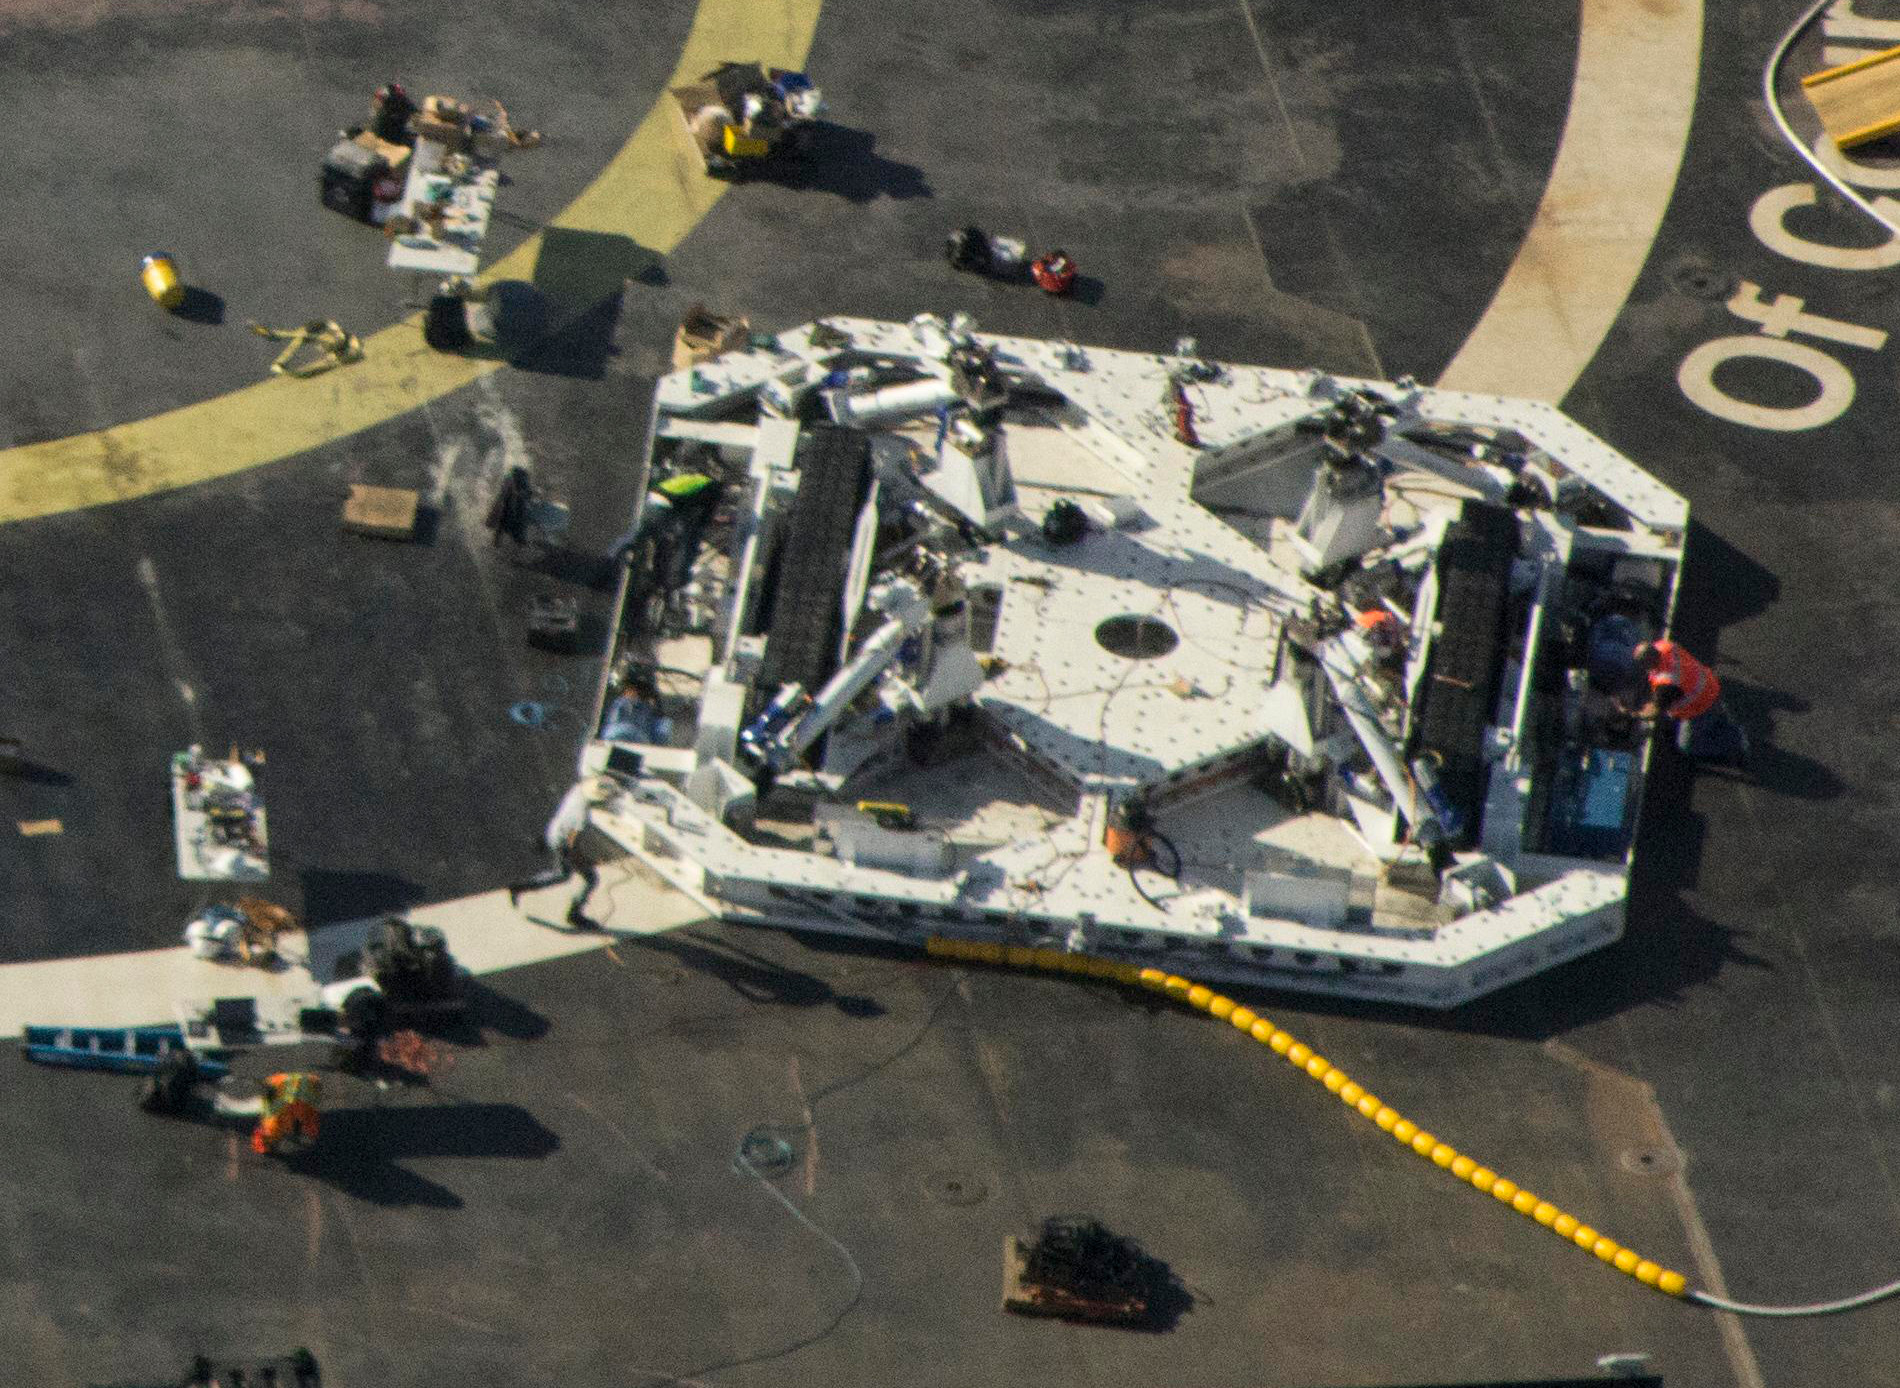 SpaceX-OCISLY-droneship-robot-optimus-prime